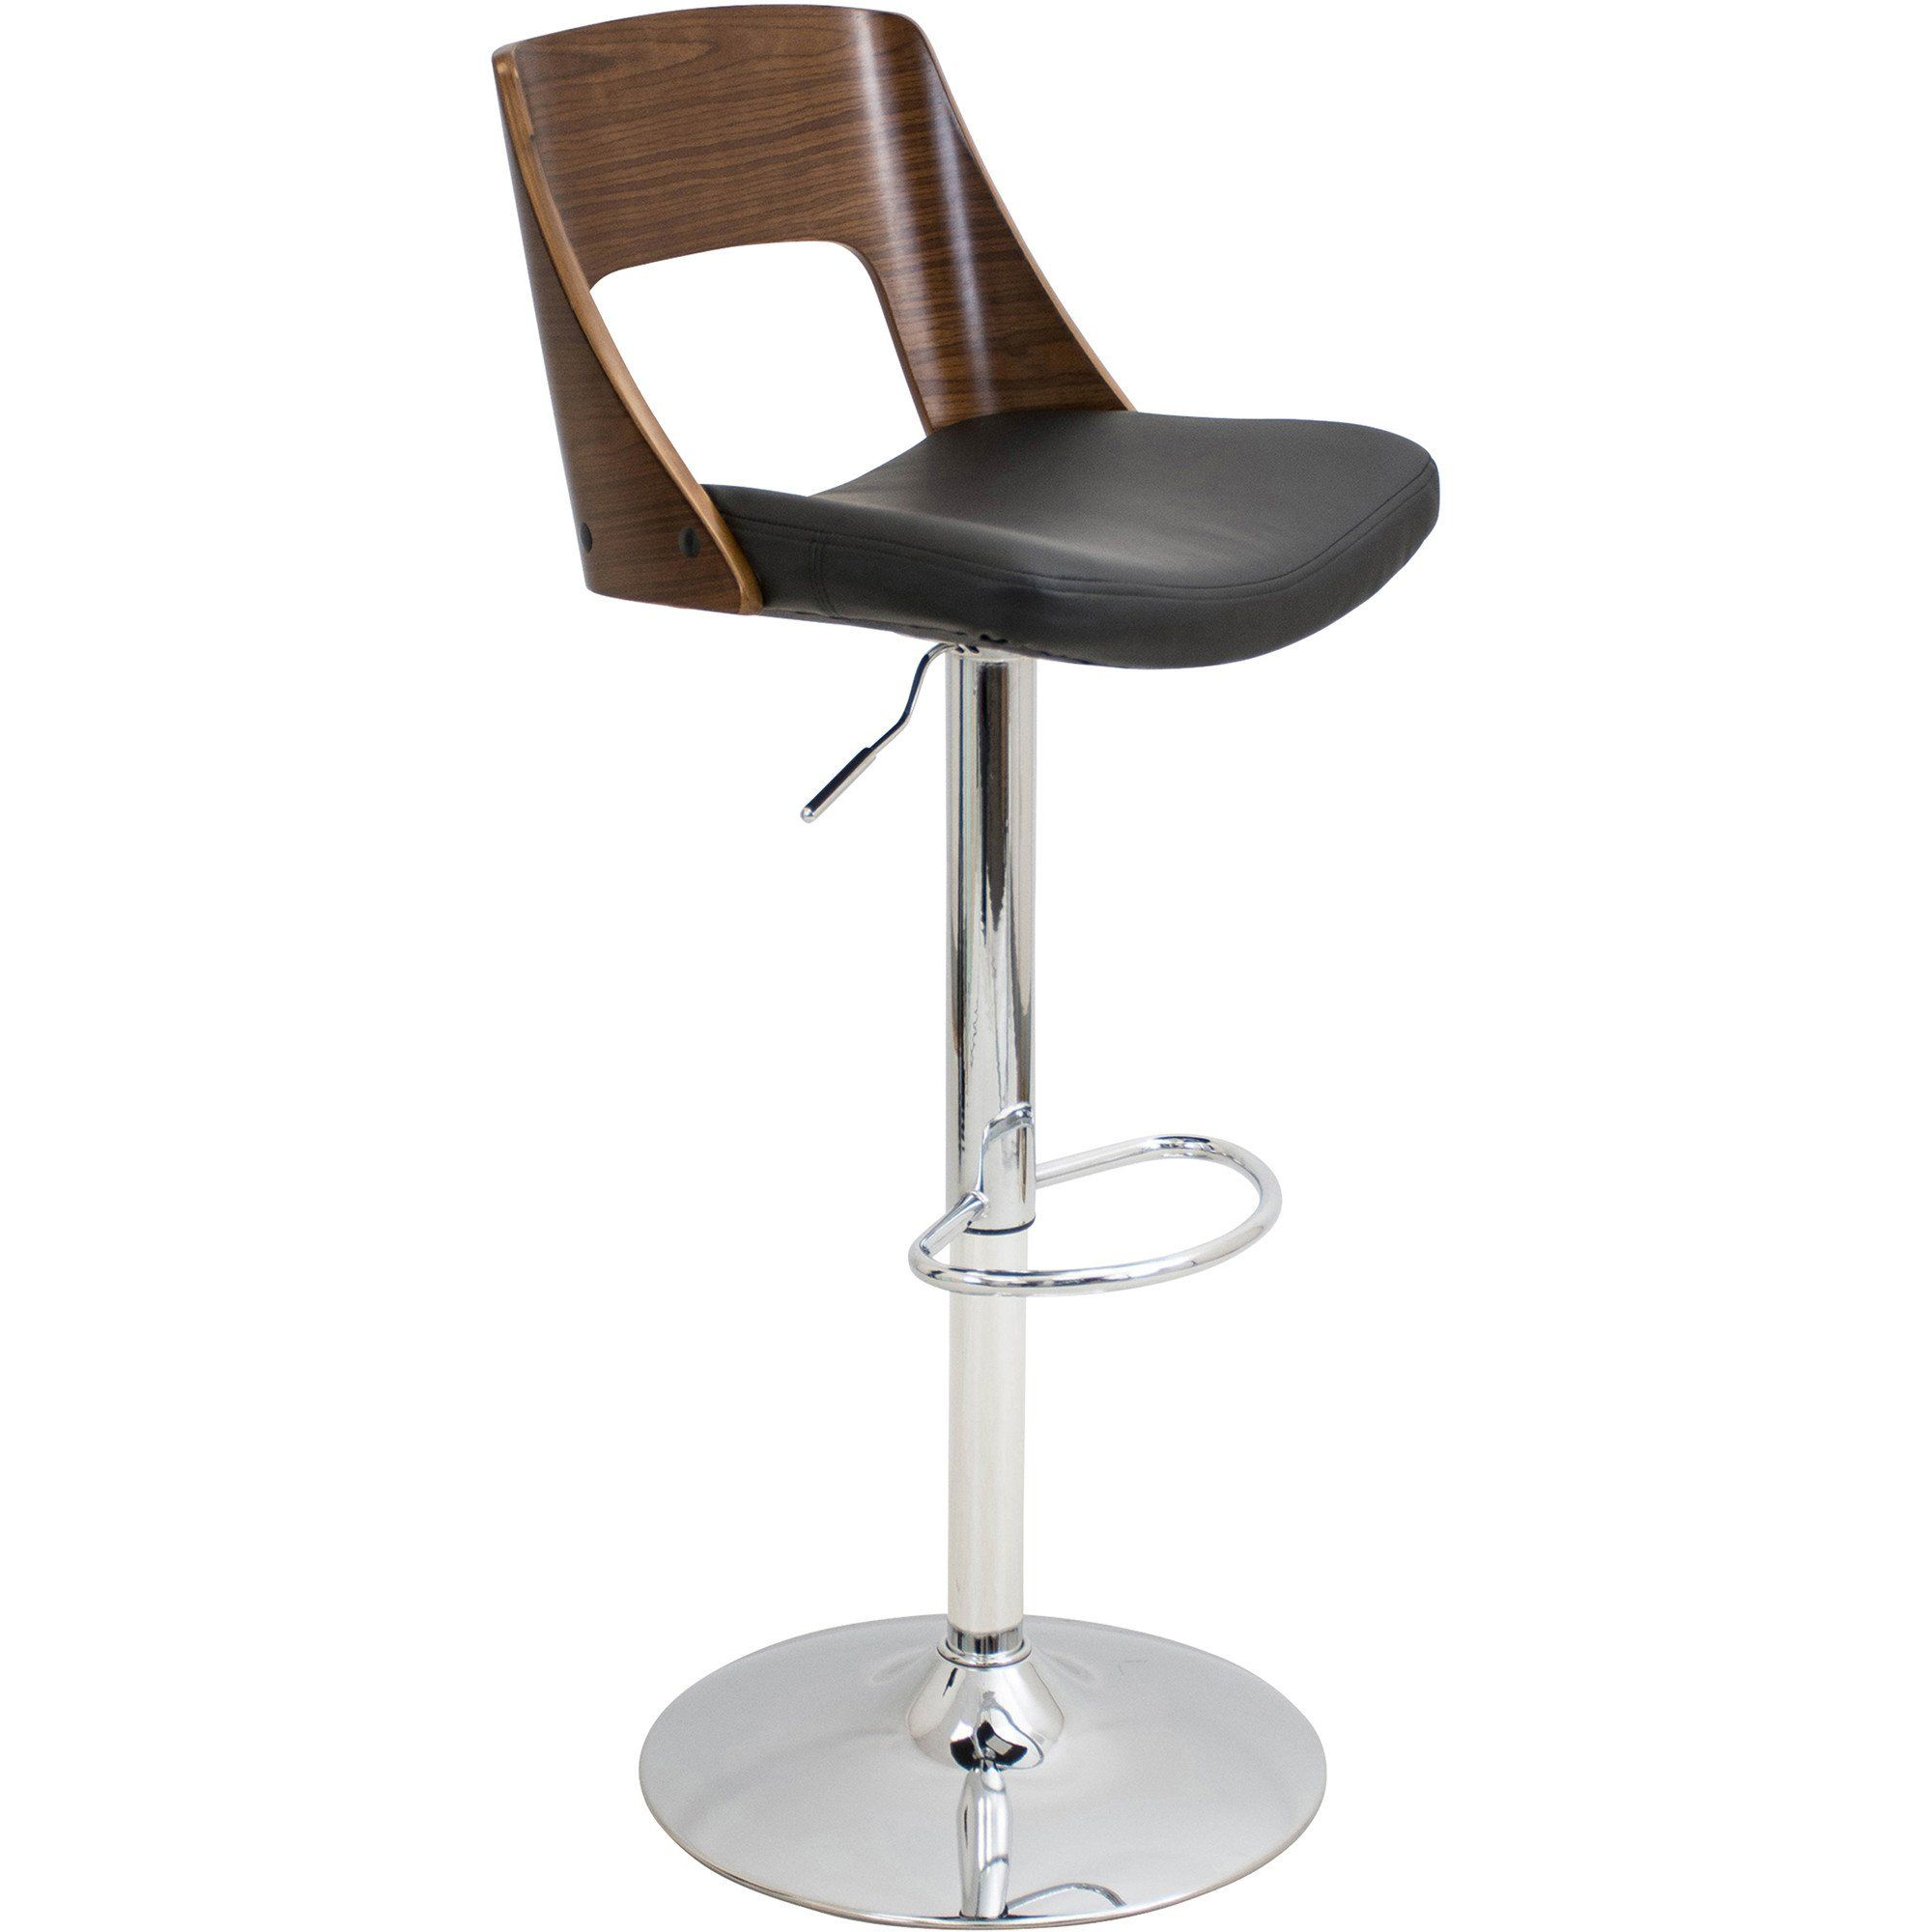 Peachy Valencia Height Adjustable Swivel Barstool Walnut Black Pabps2019 Chair Design Images Pabps2019Com